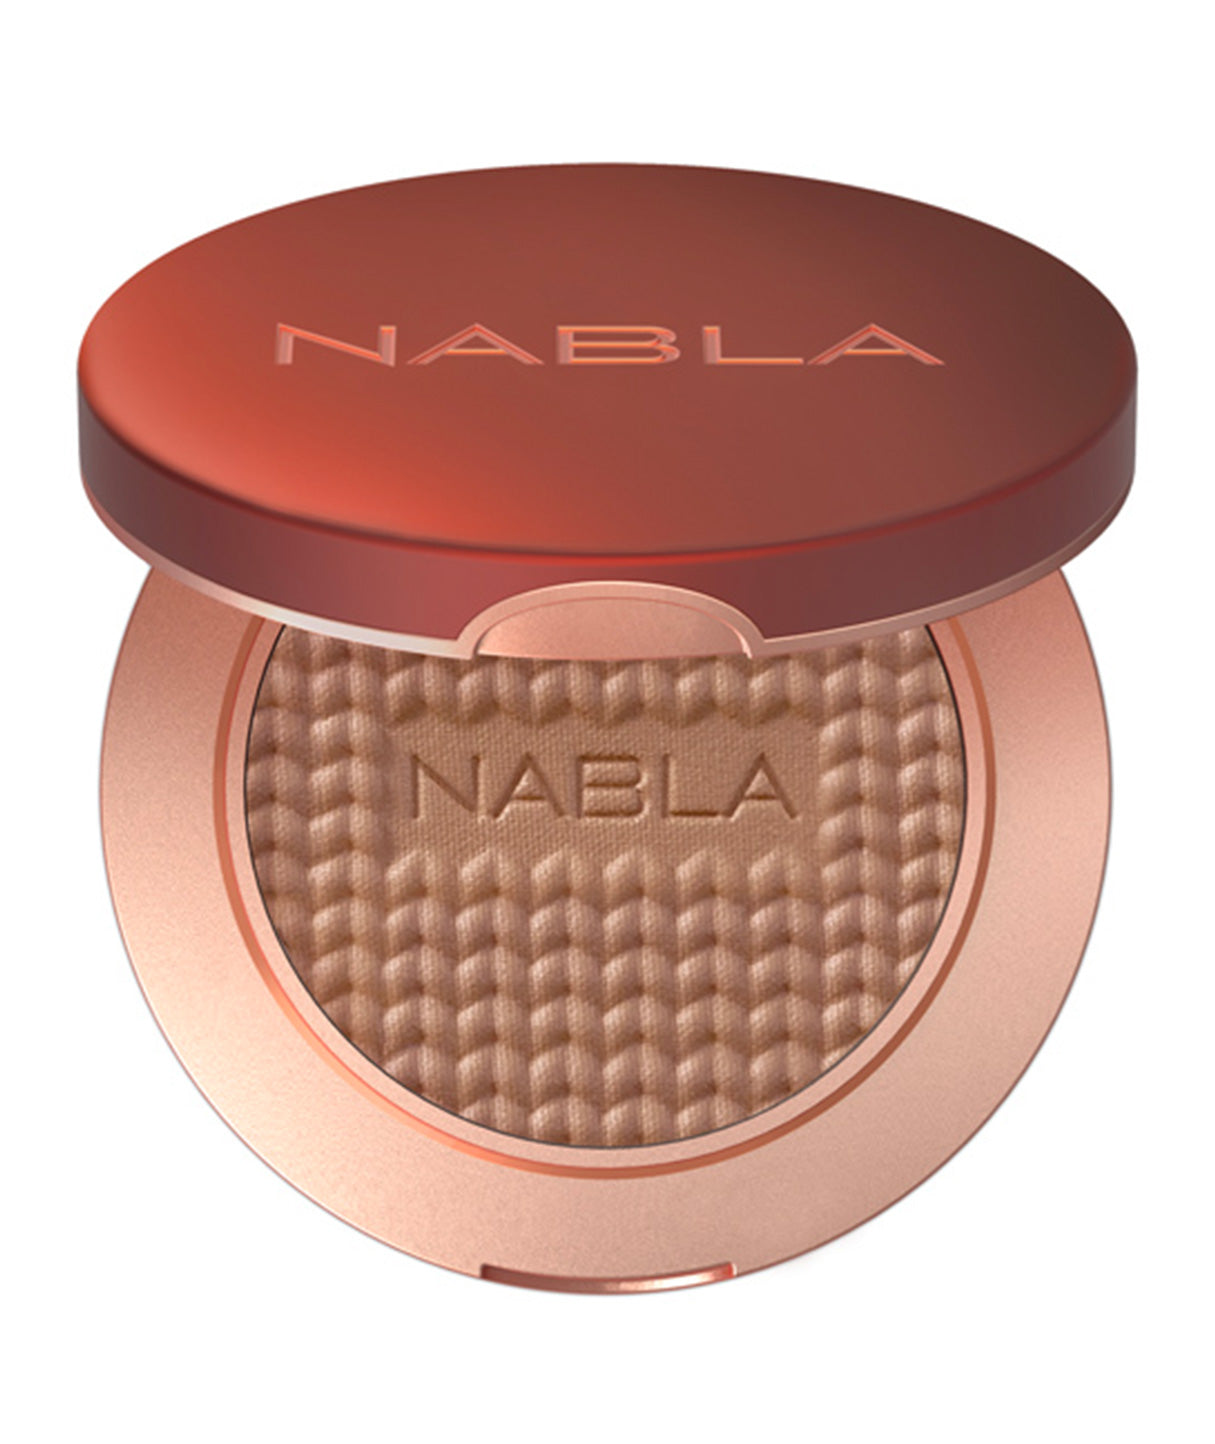 Cameo Highlighter - Nabla - Véganie